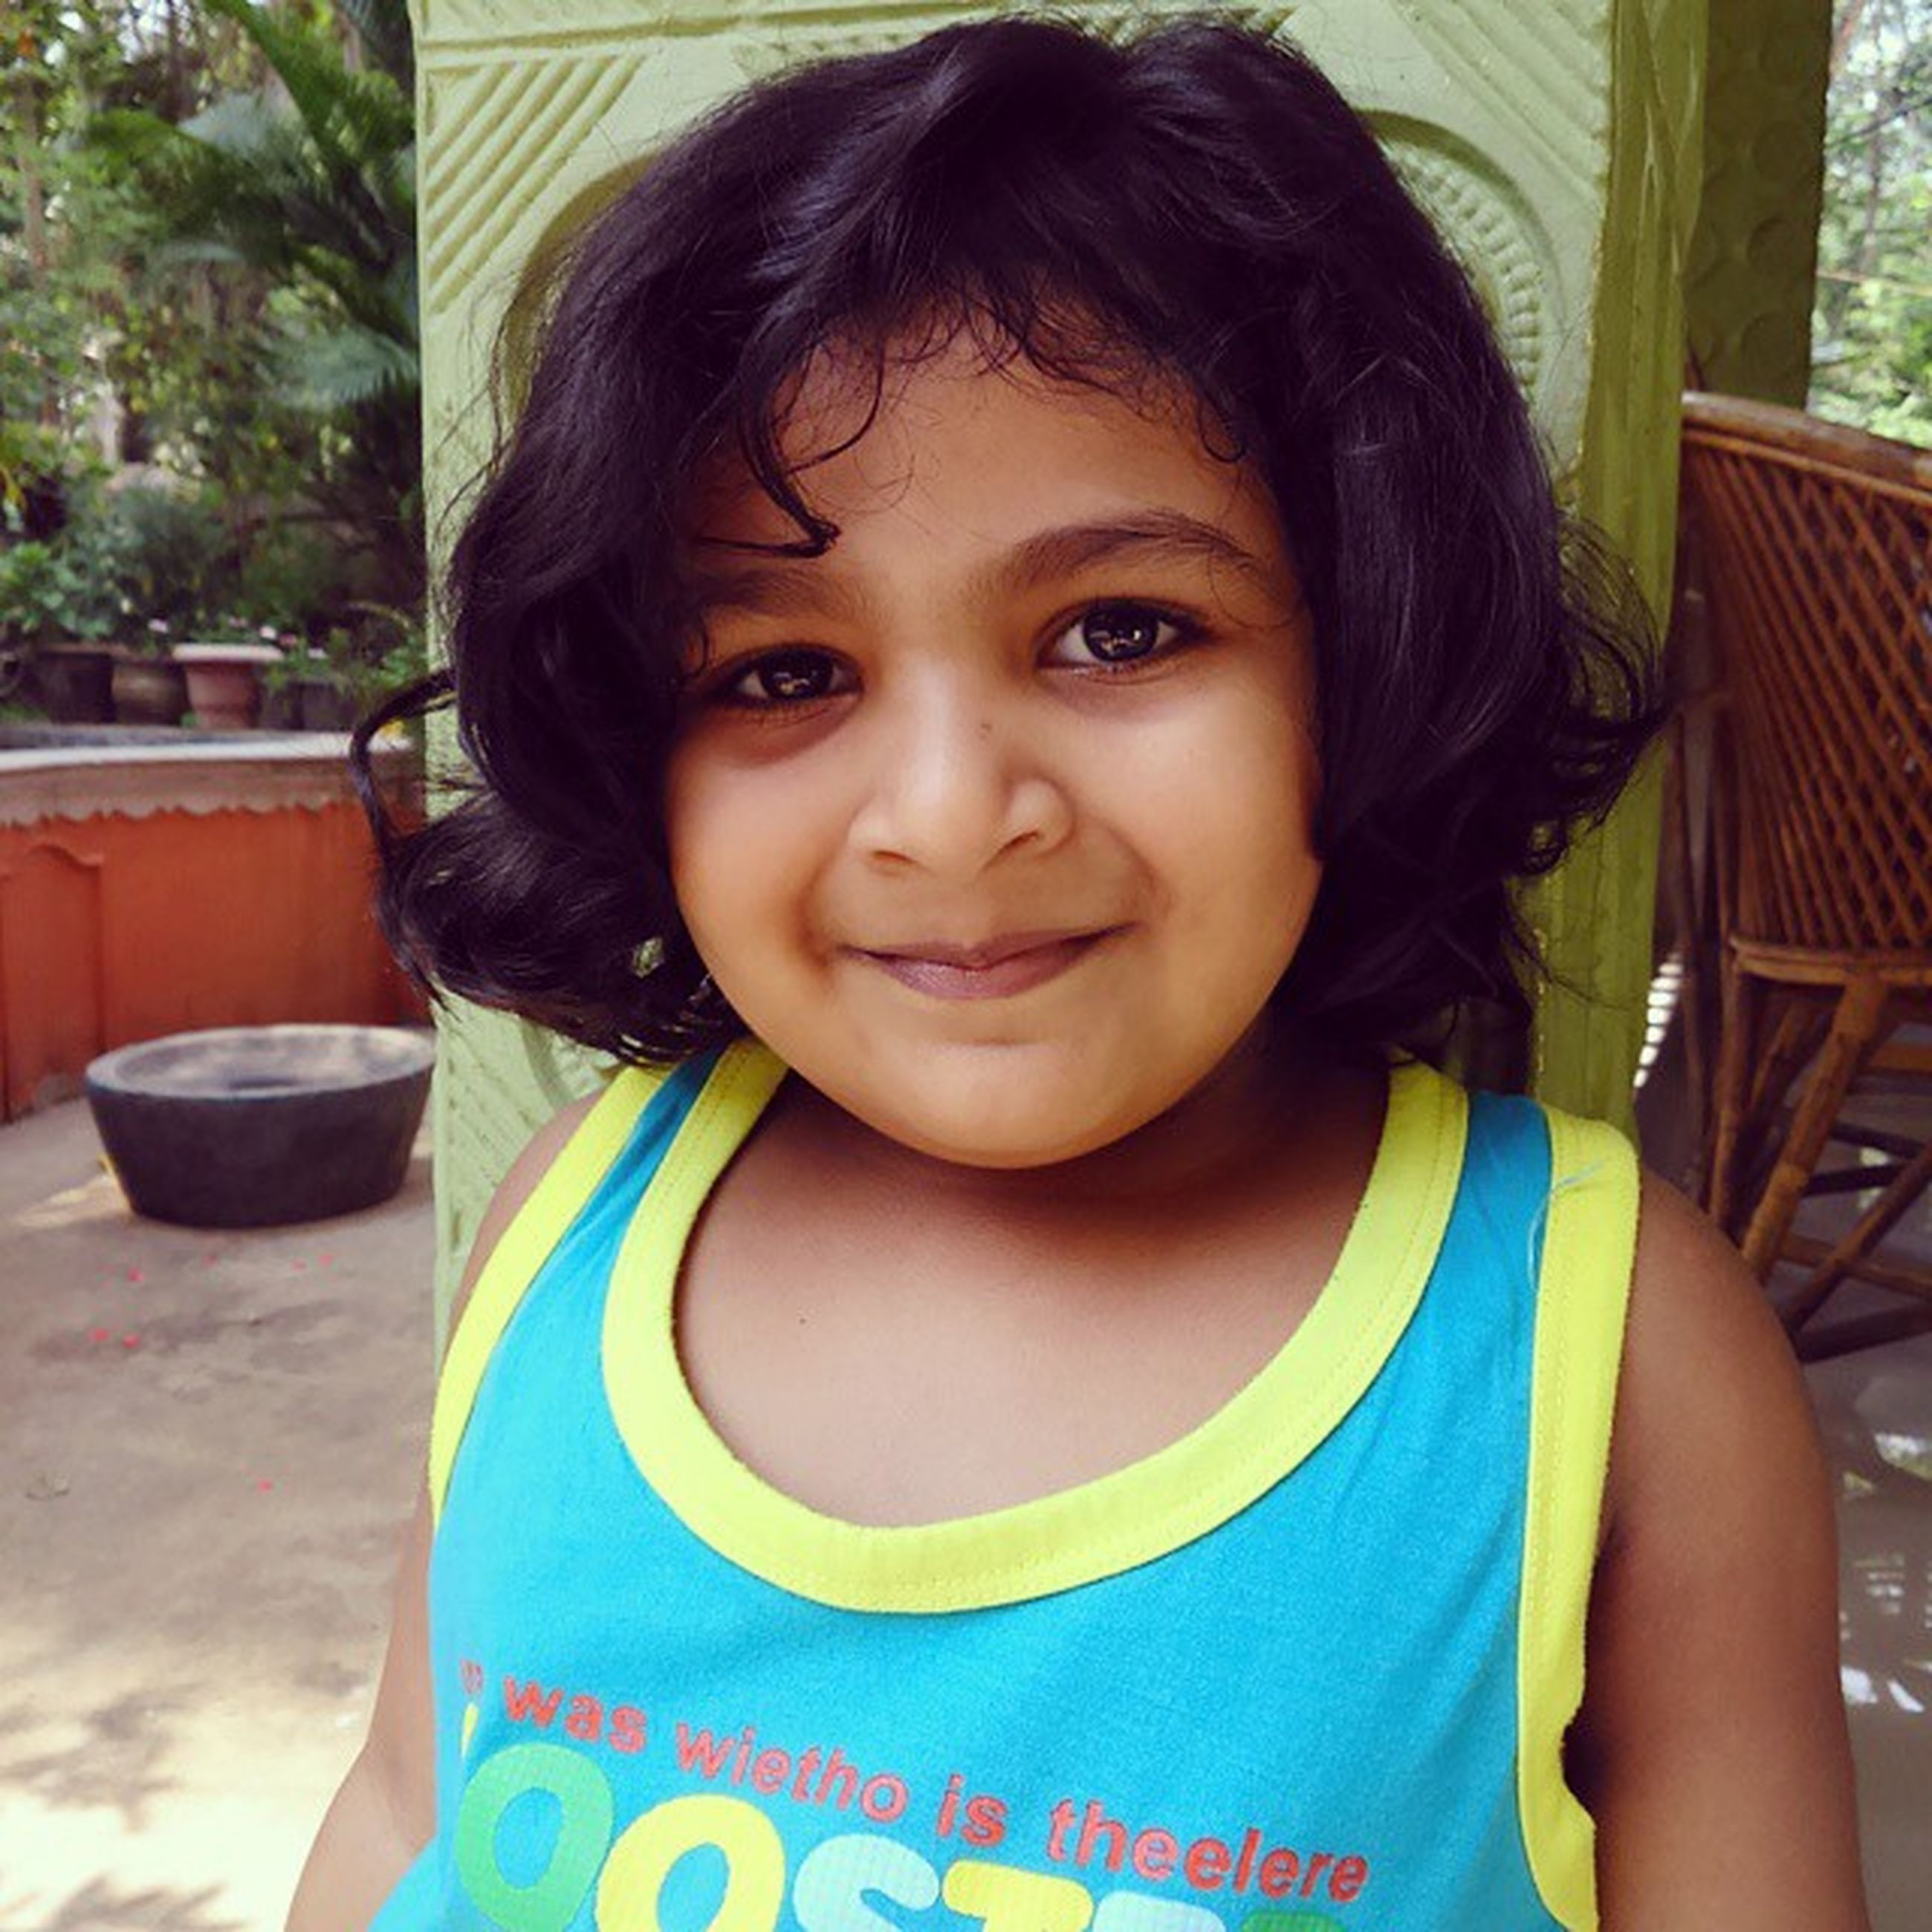 person, portrait, looking at camera, childhood, lifestyles, casual clothing, smiling, elementary age, front view, leisure activity, happiness, cute, girls, waist up, innocence, headshot, boys, toothy smile